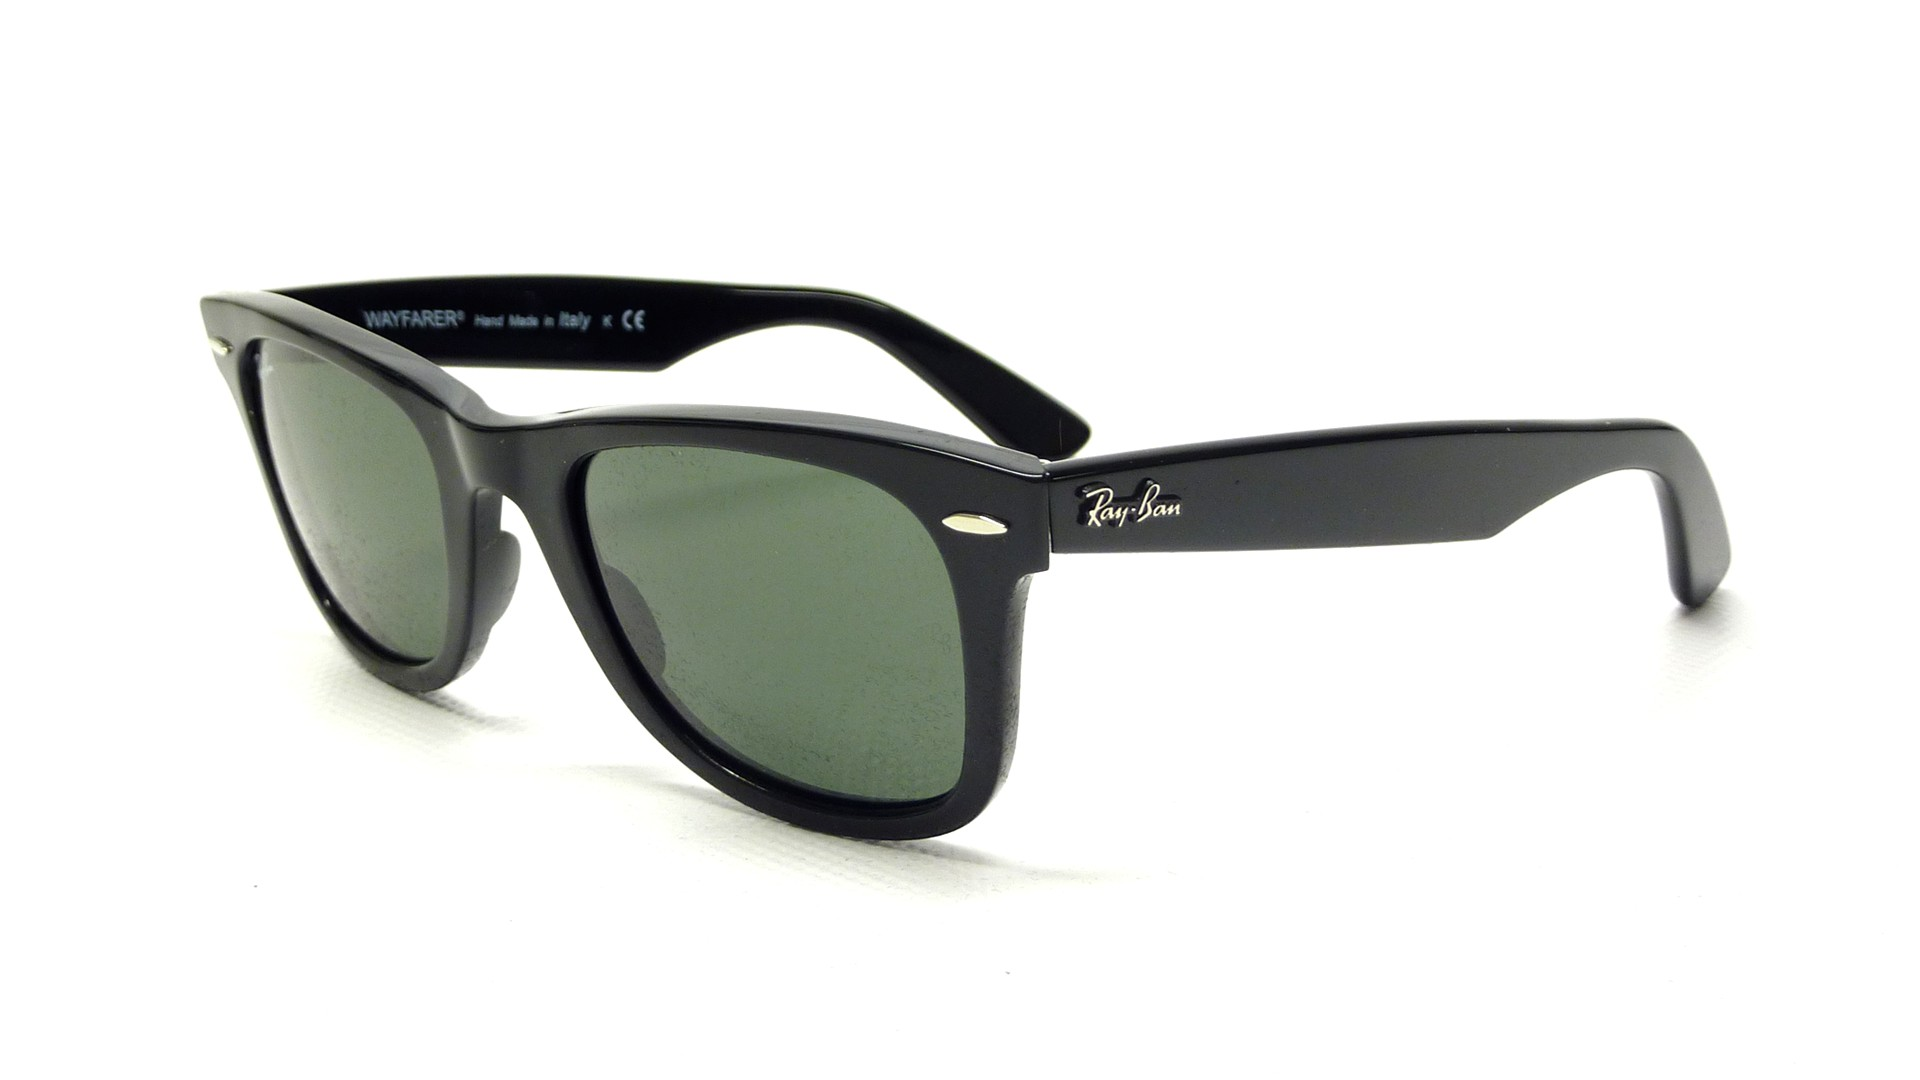 Sunglasses Ray-Ban Original Wayfarer Black RB2140 901 50-22 Medium c88c2ac0a7